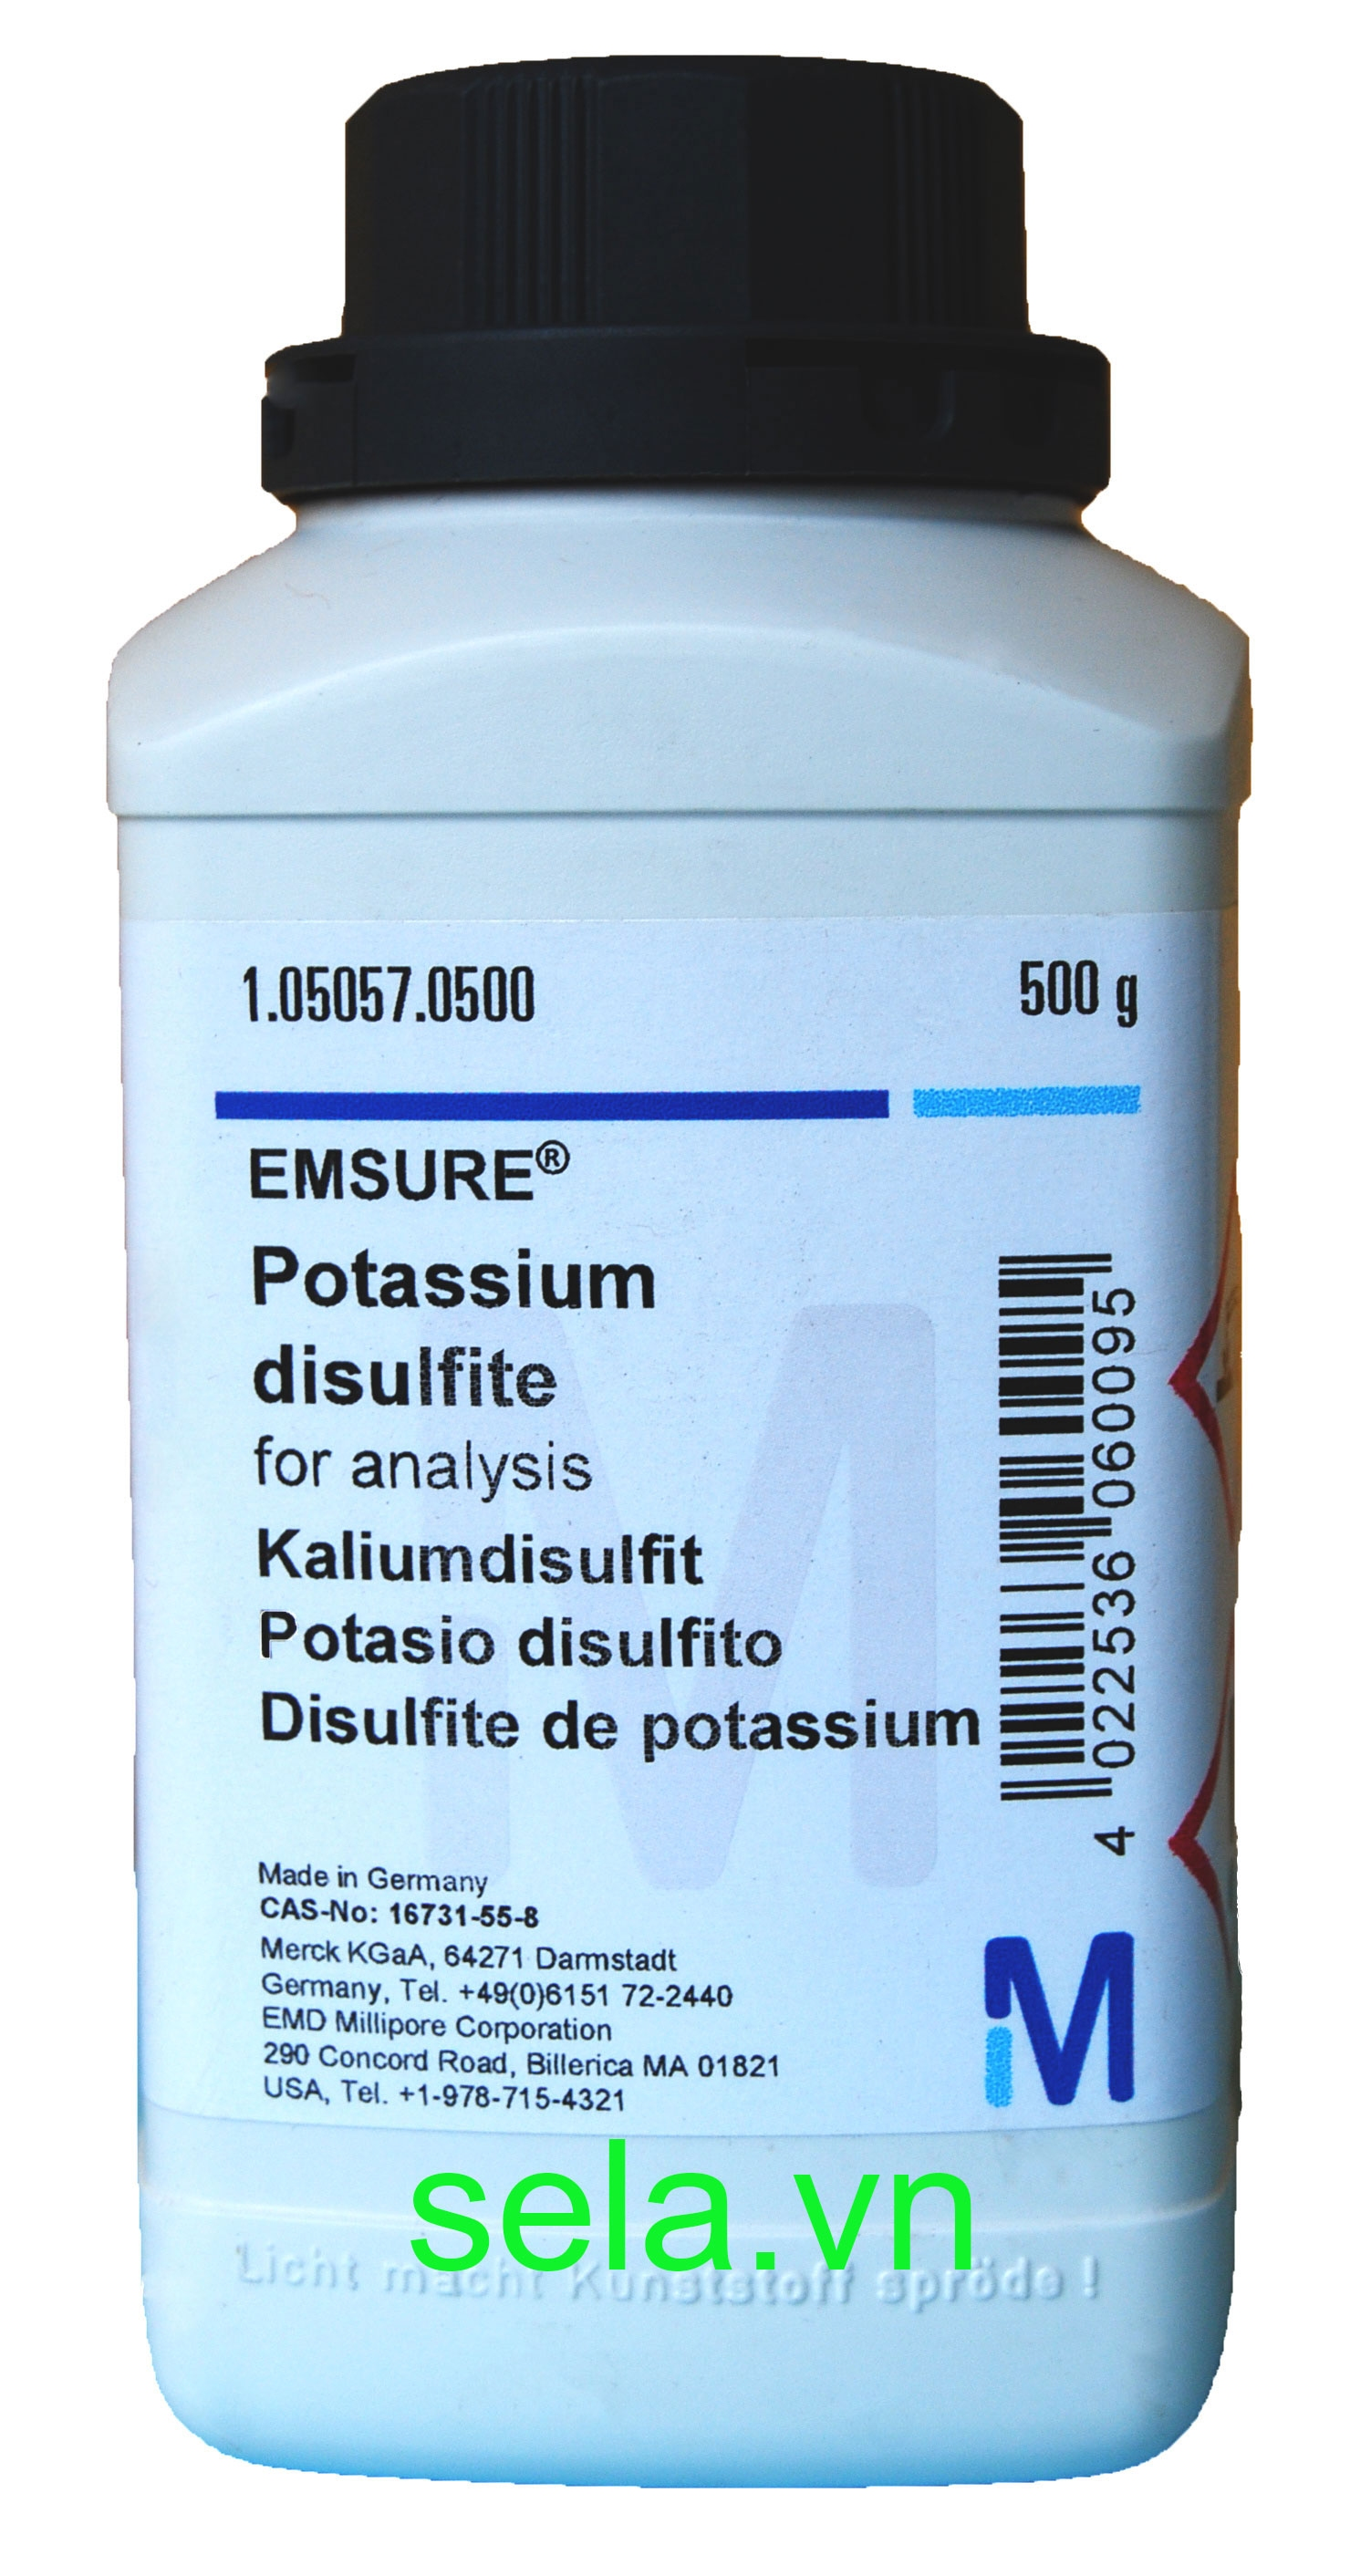 Potassium disulfite for analysis EMSURE®